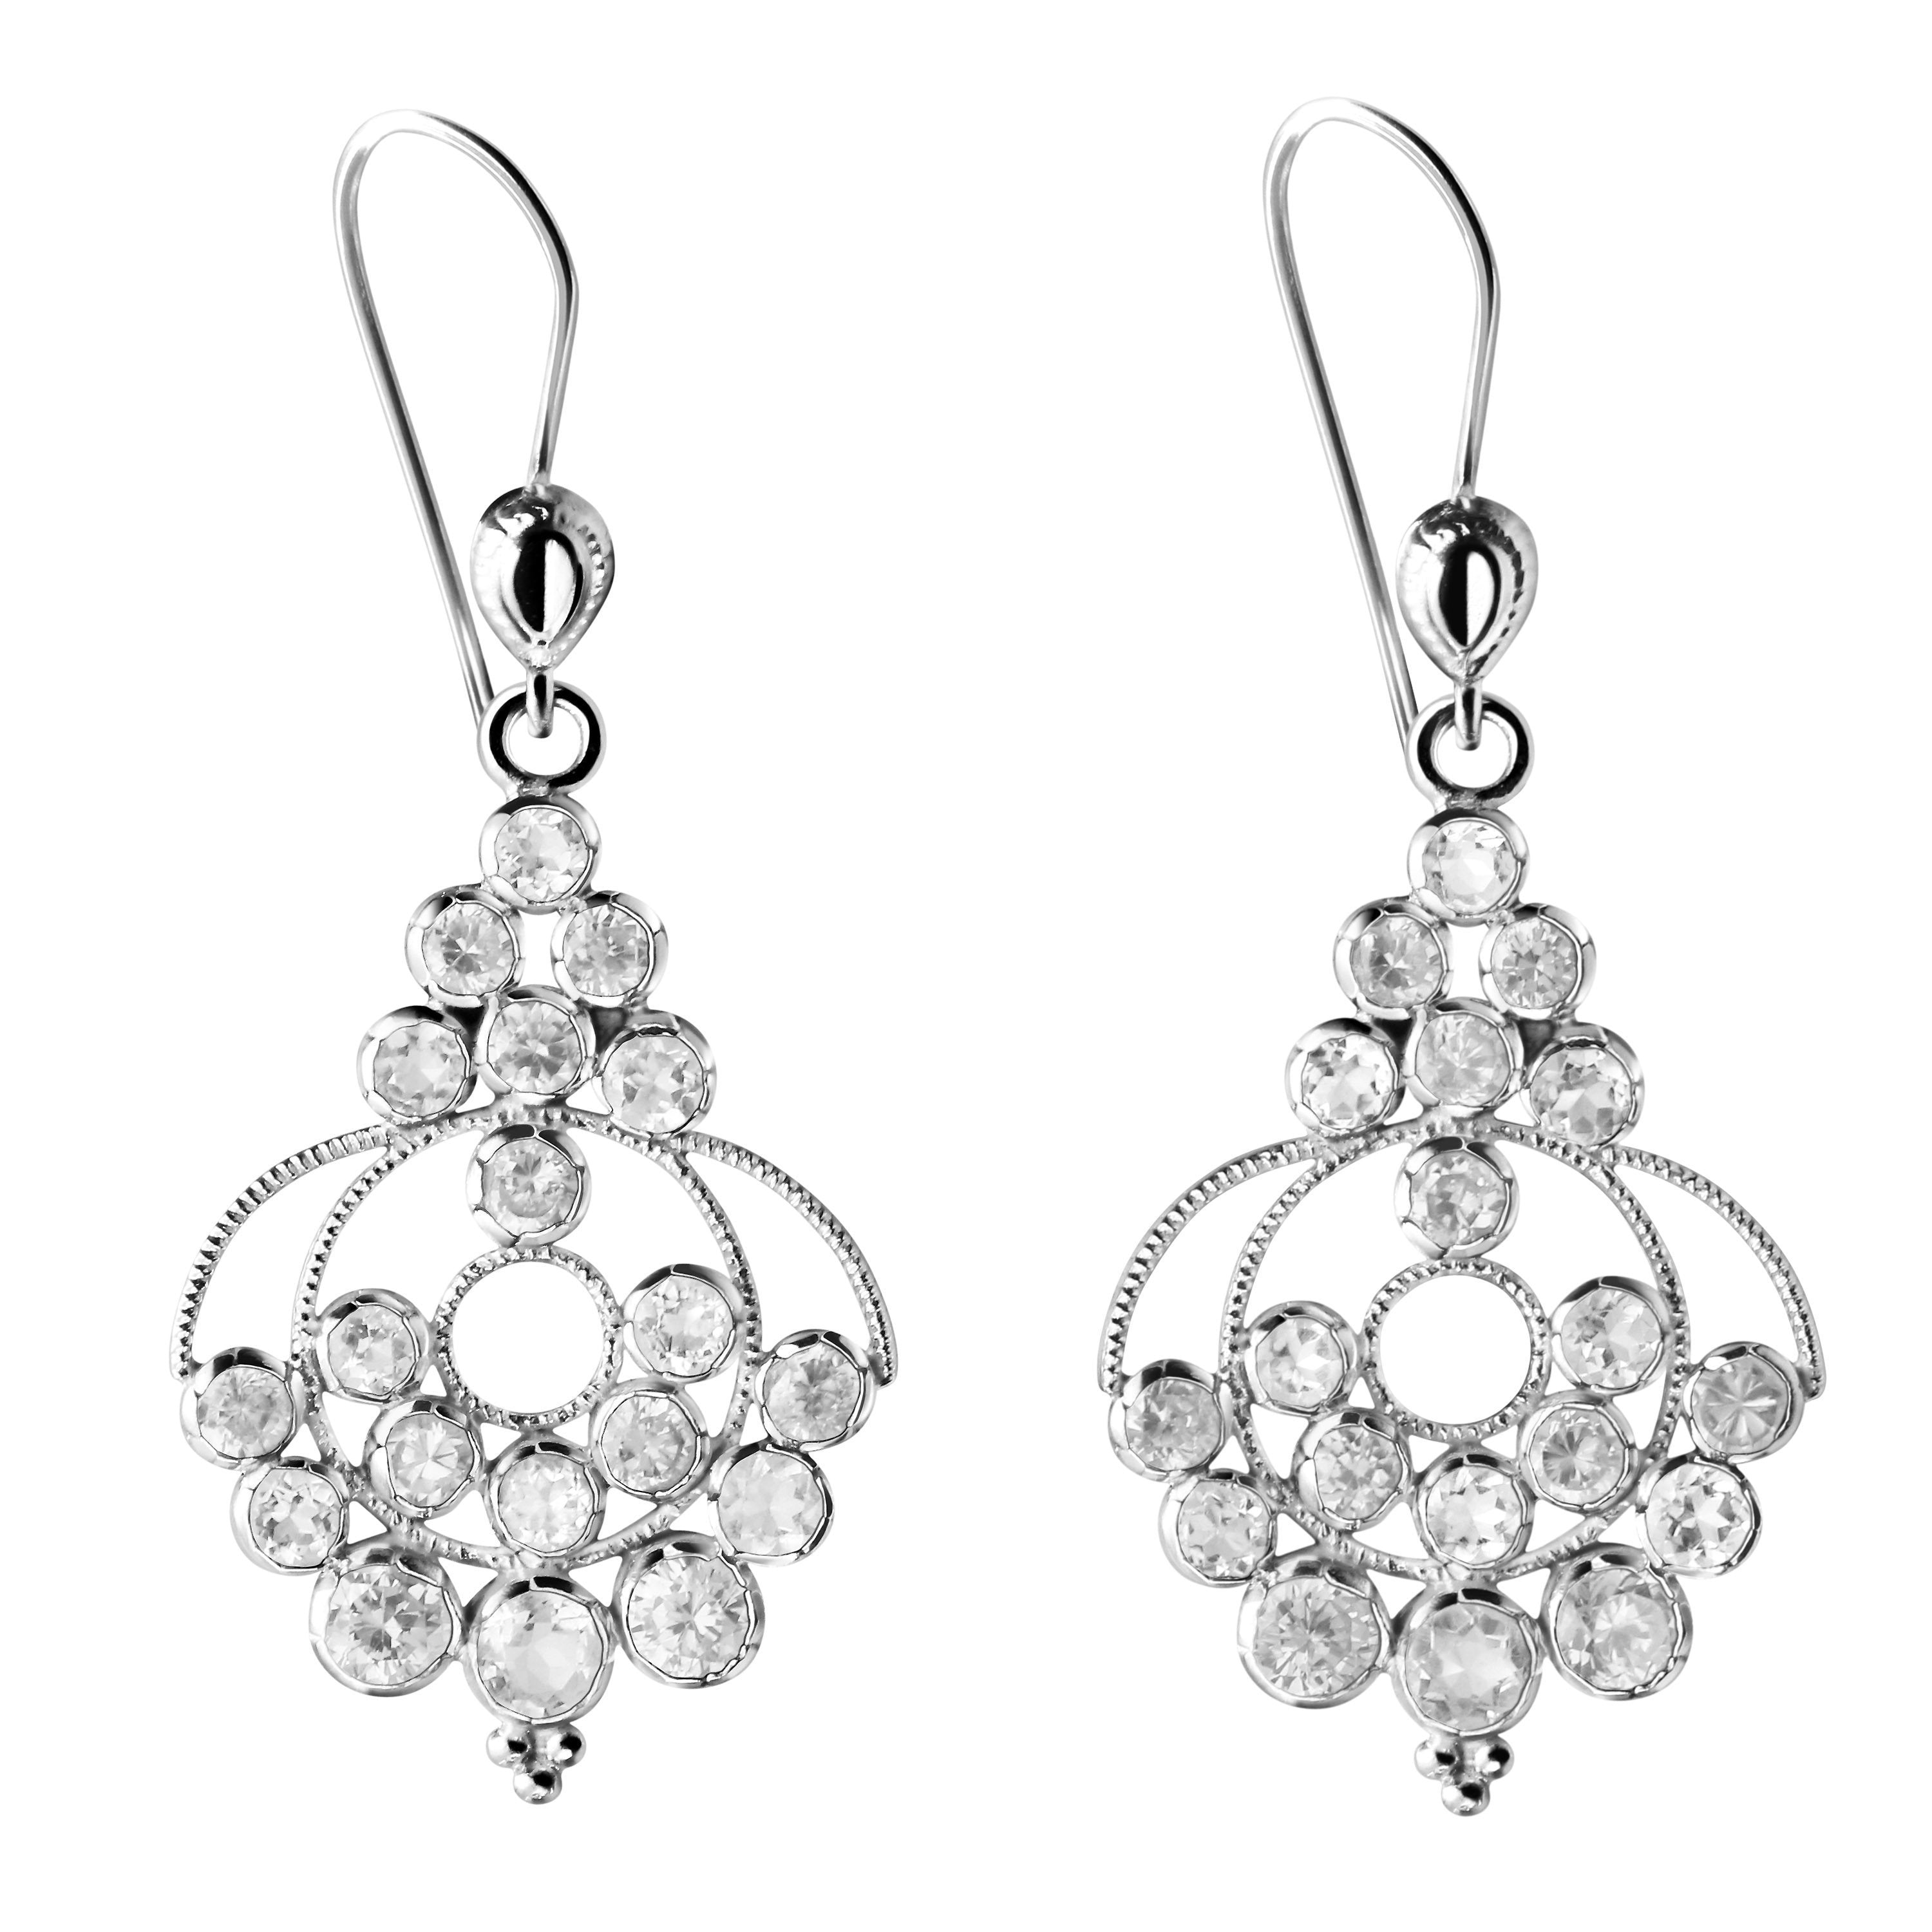 Red Diamond Chandelier Earrings: Simulated Diamond And Silver Chandelier Earrings